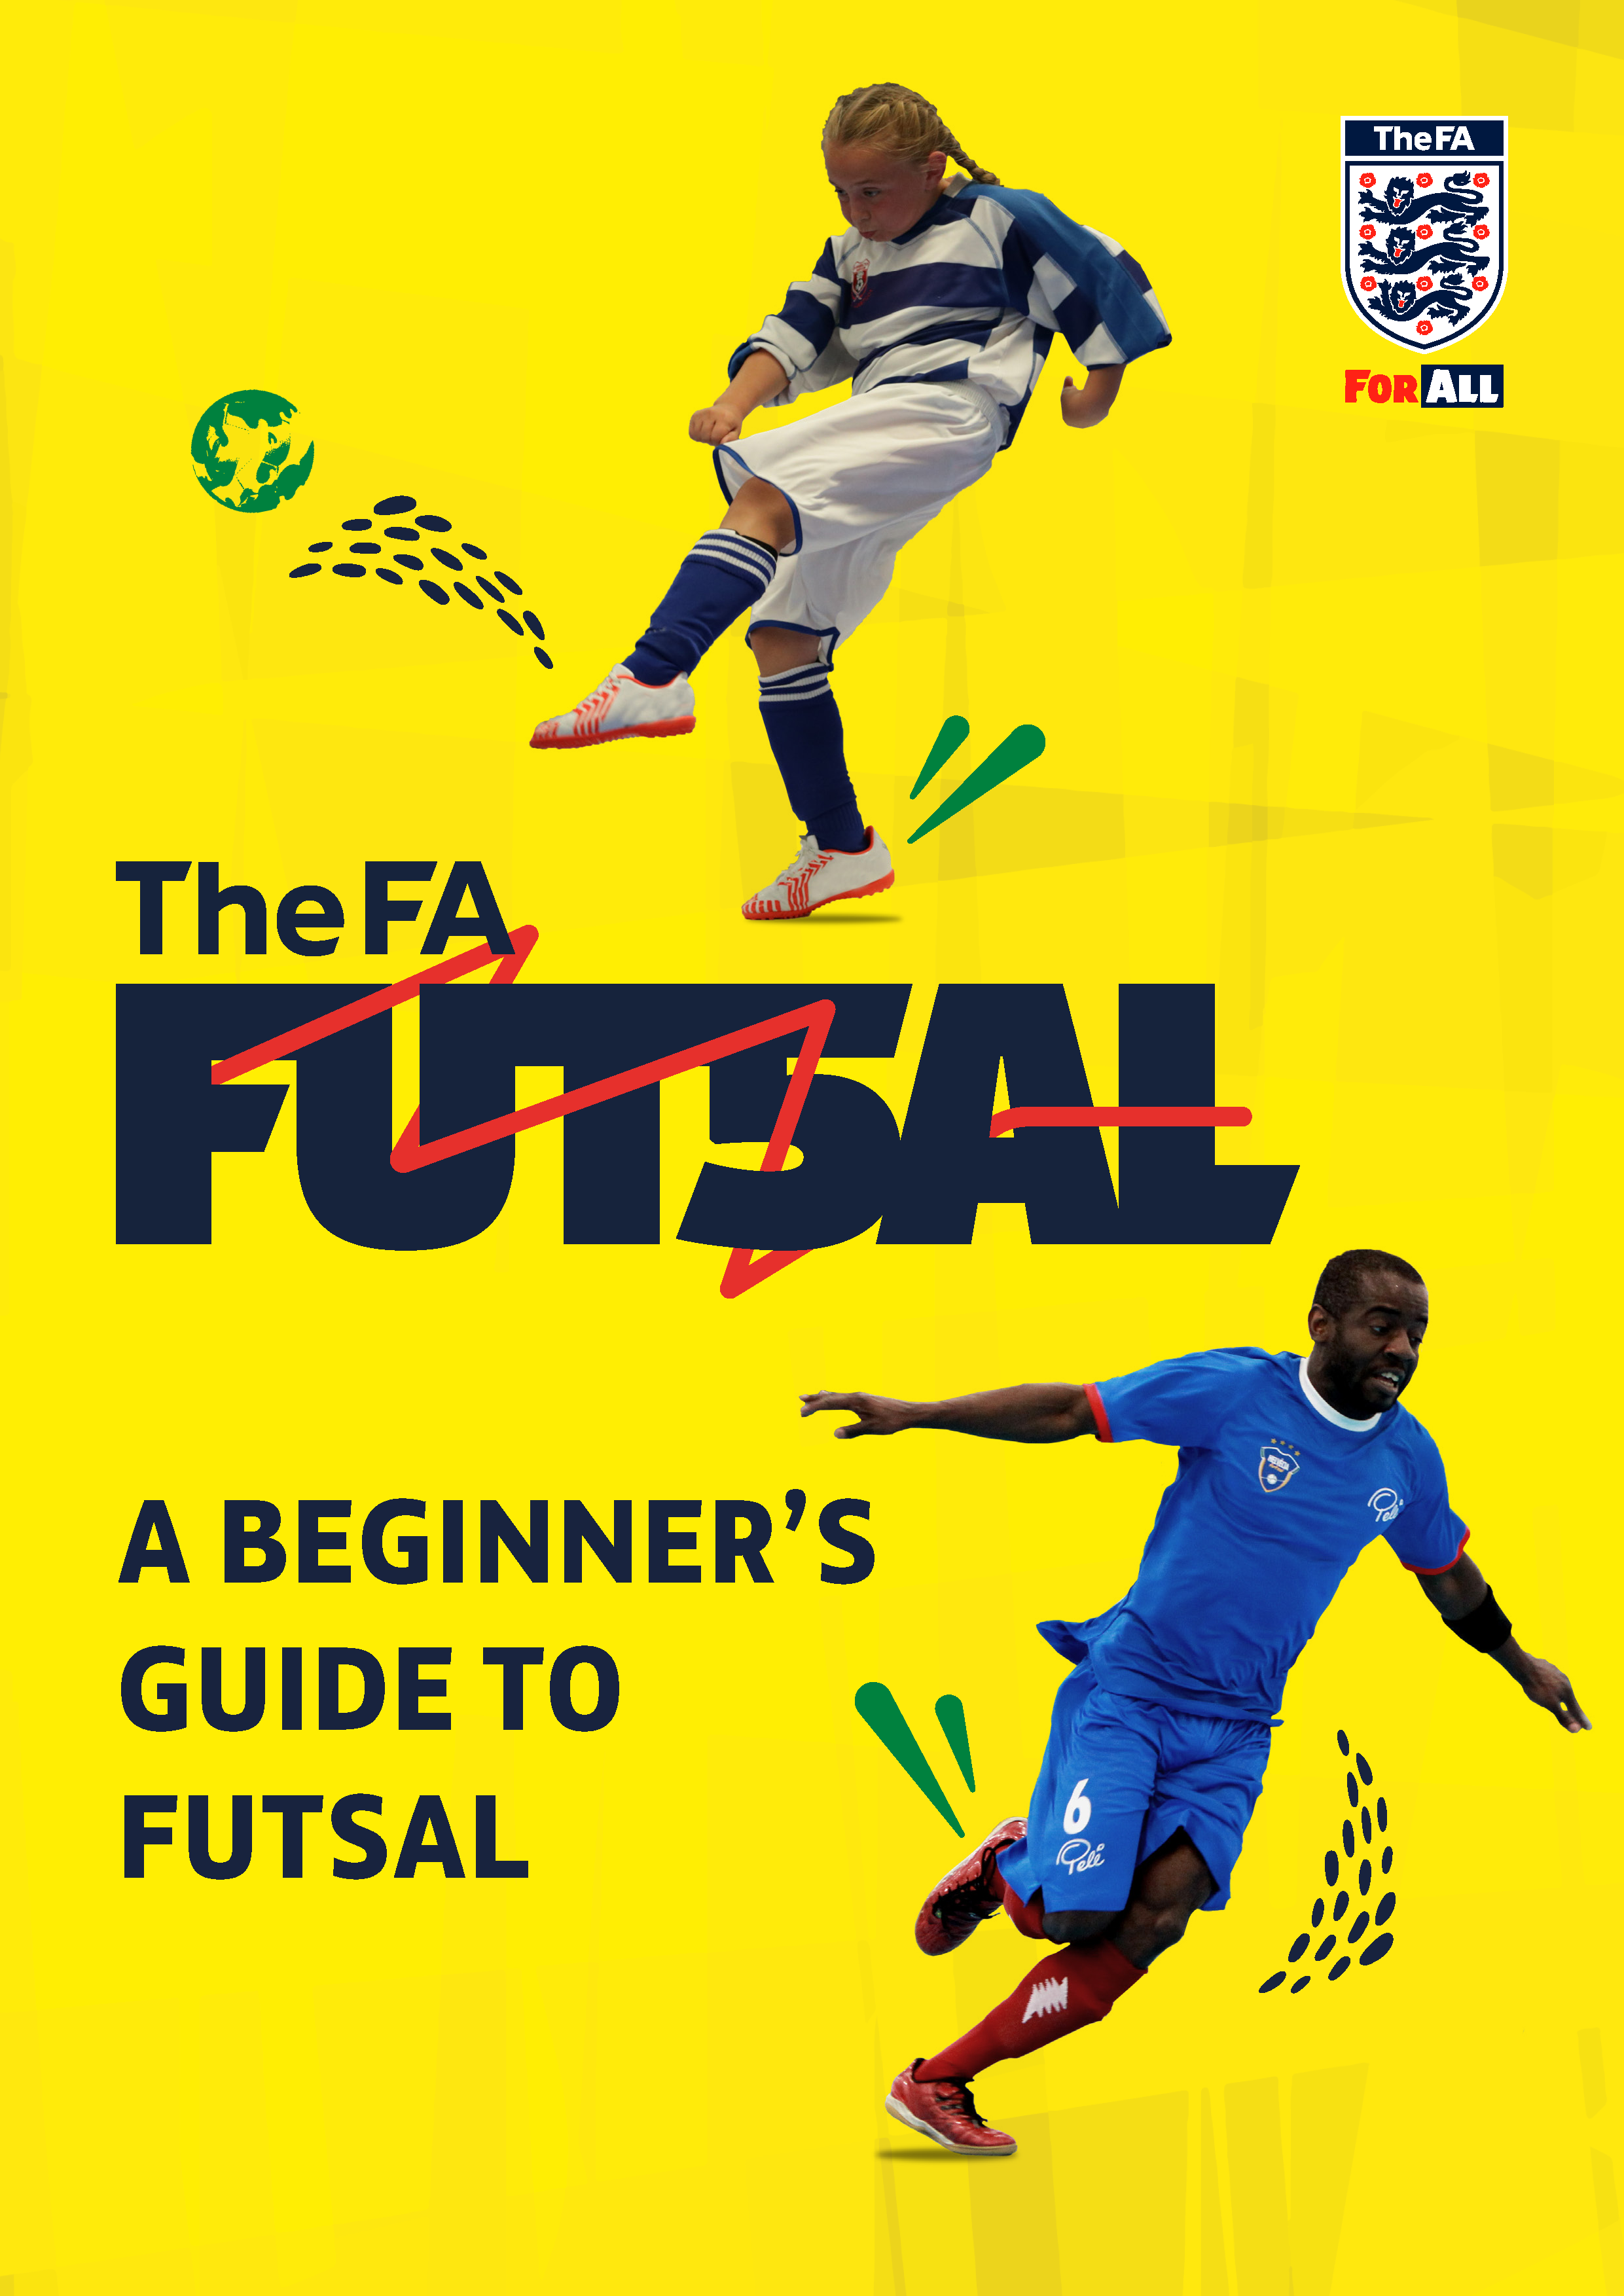 Beginniners guide to Futsal